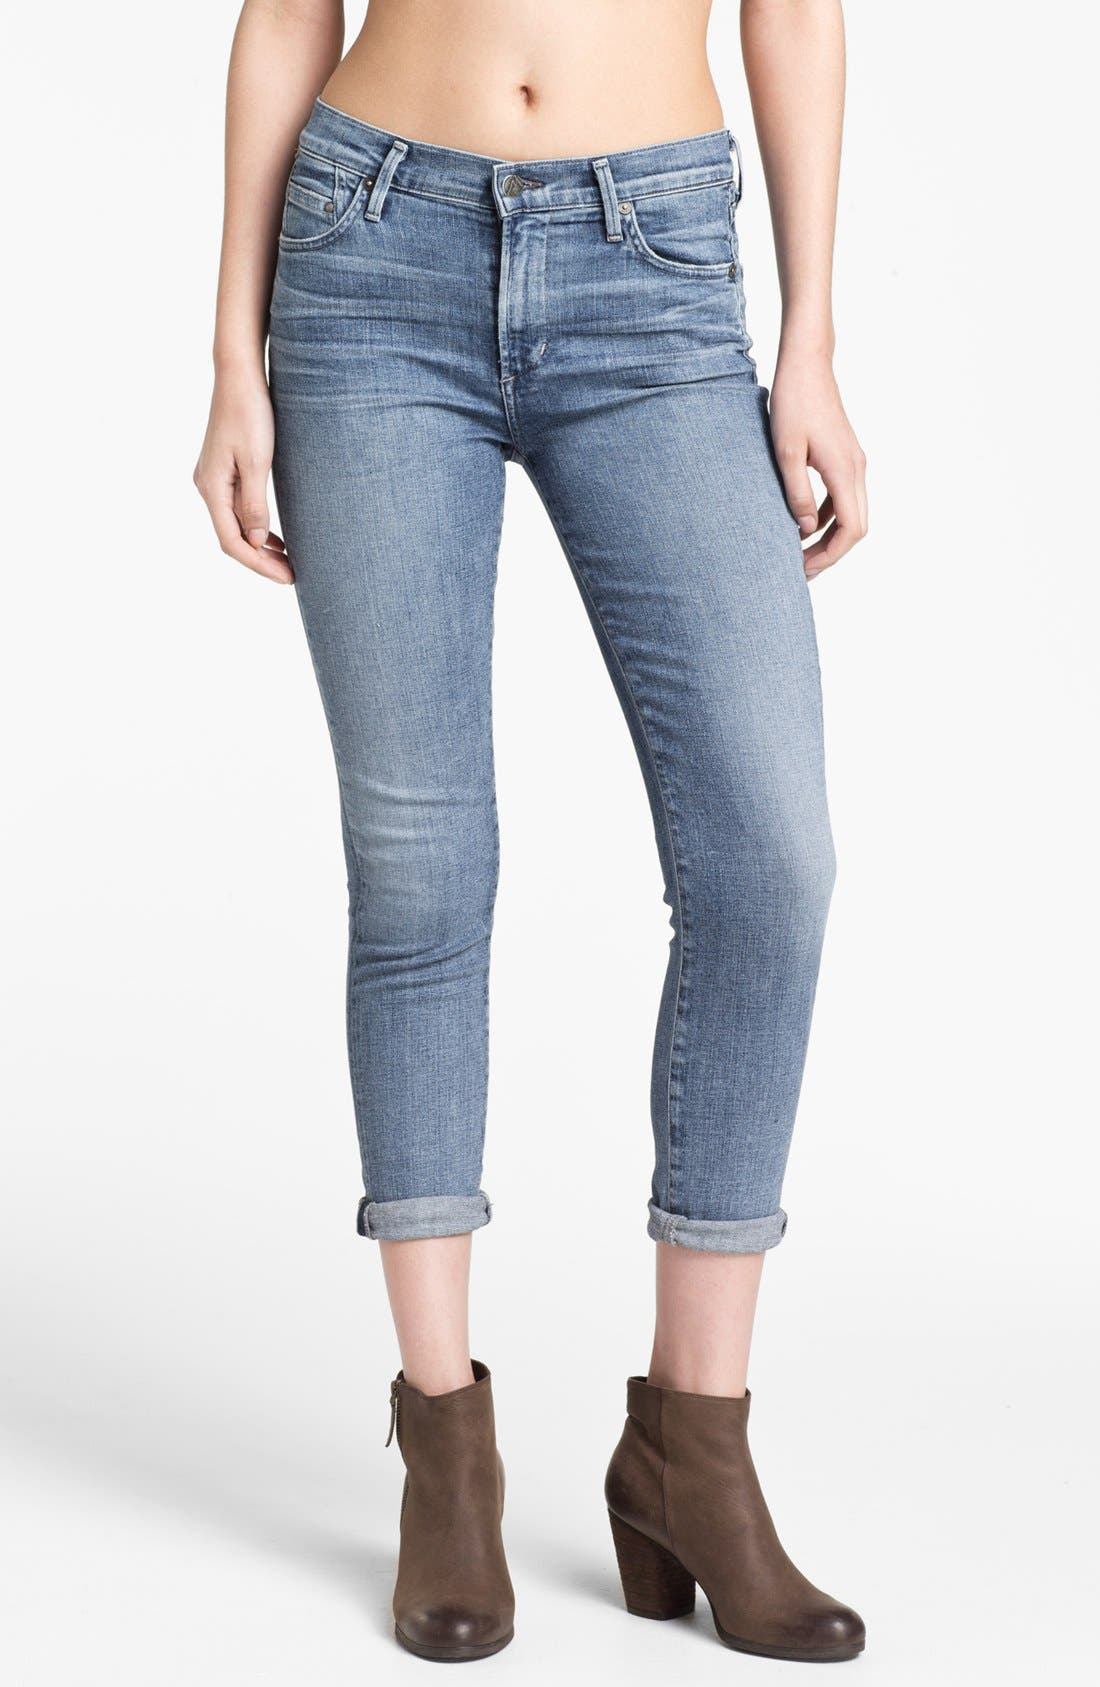 Main Image - Citizens of Humanity 'Rocket' High Rise Skinny Jeans (Fizzle)